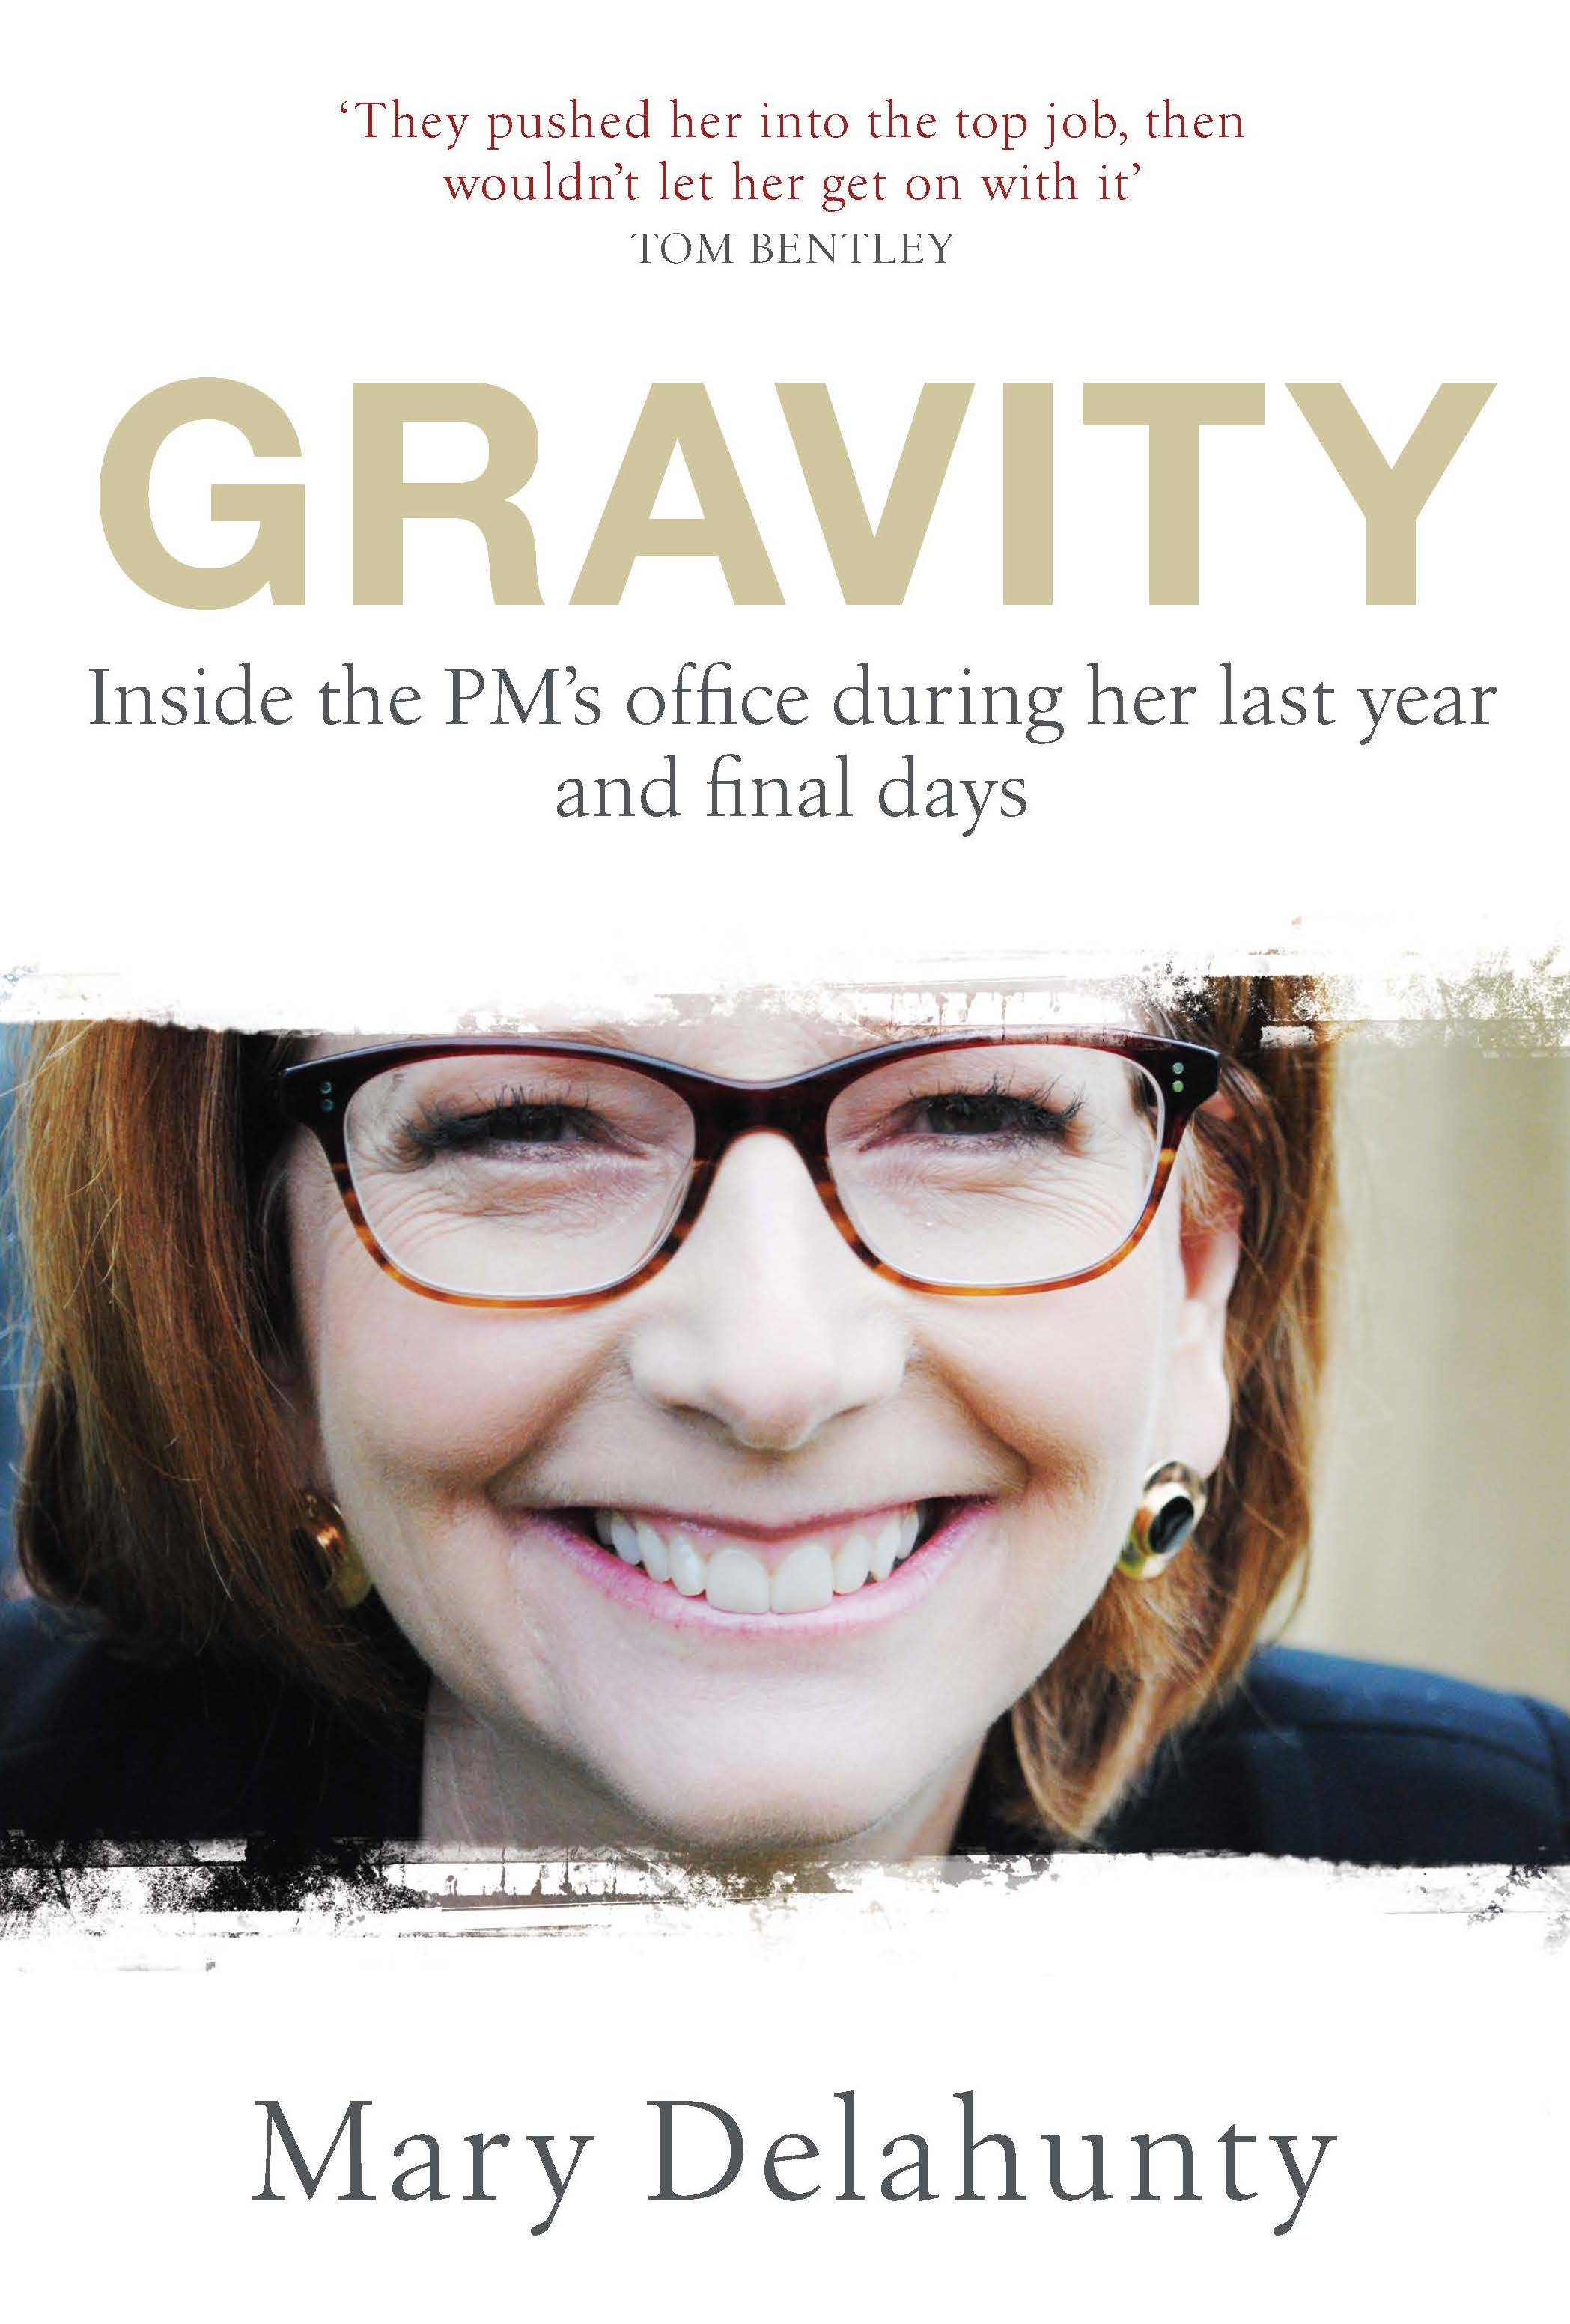 'Gravity' by Mary Delahunty.  Former Prime Minister Julia Gillard wearing the now famous spectacles styled by Sue Feldy